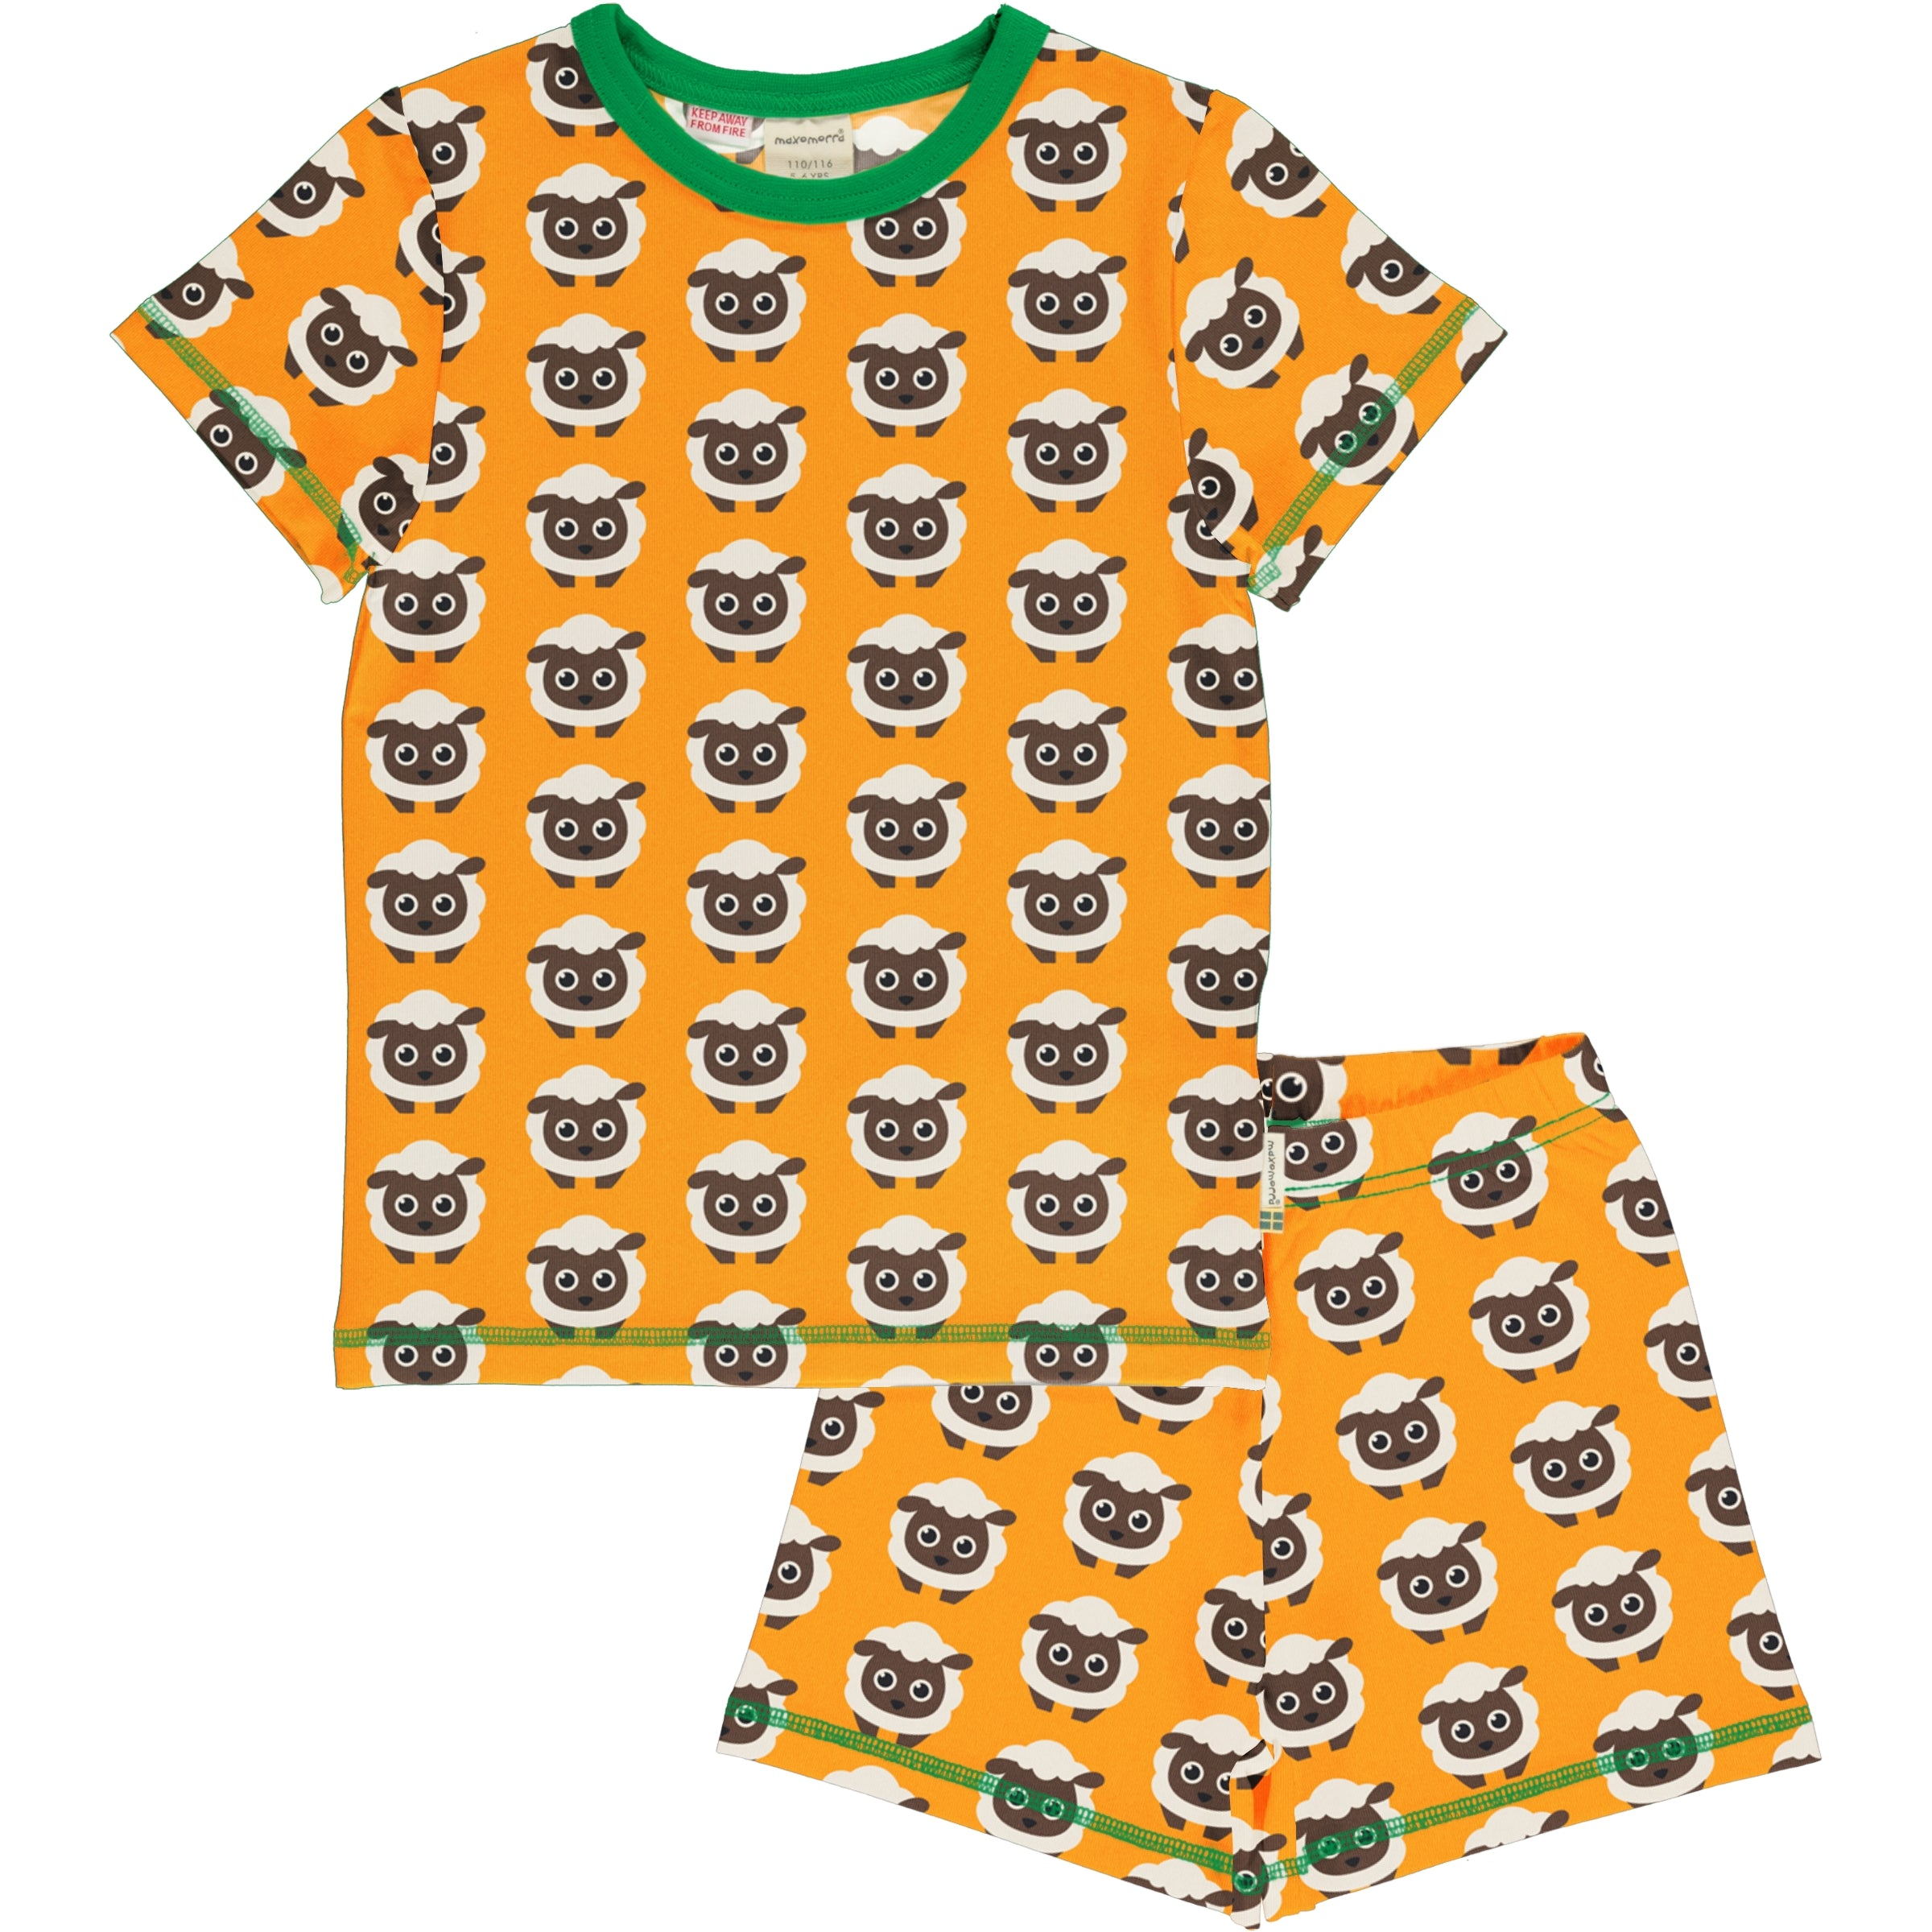 Maxomorra Pyjama Set SS Classic Sheep,little-tiger-togs.